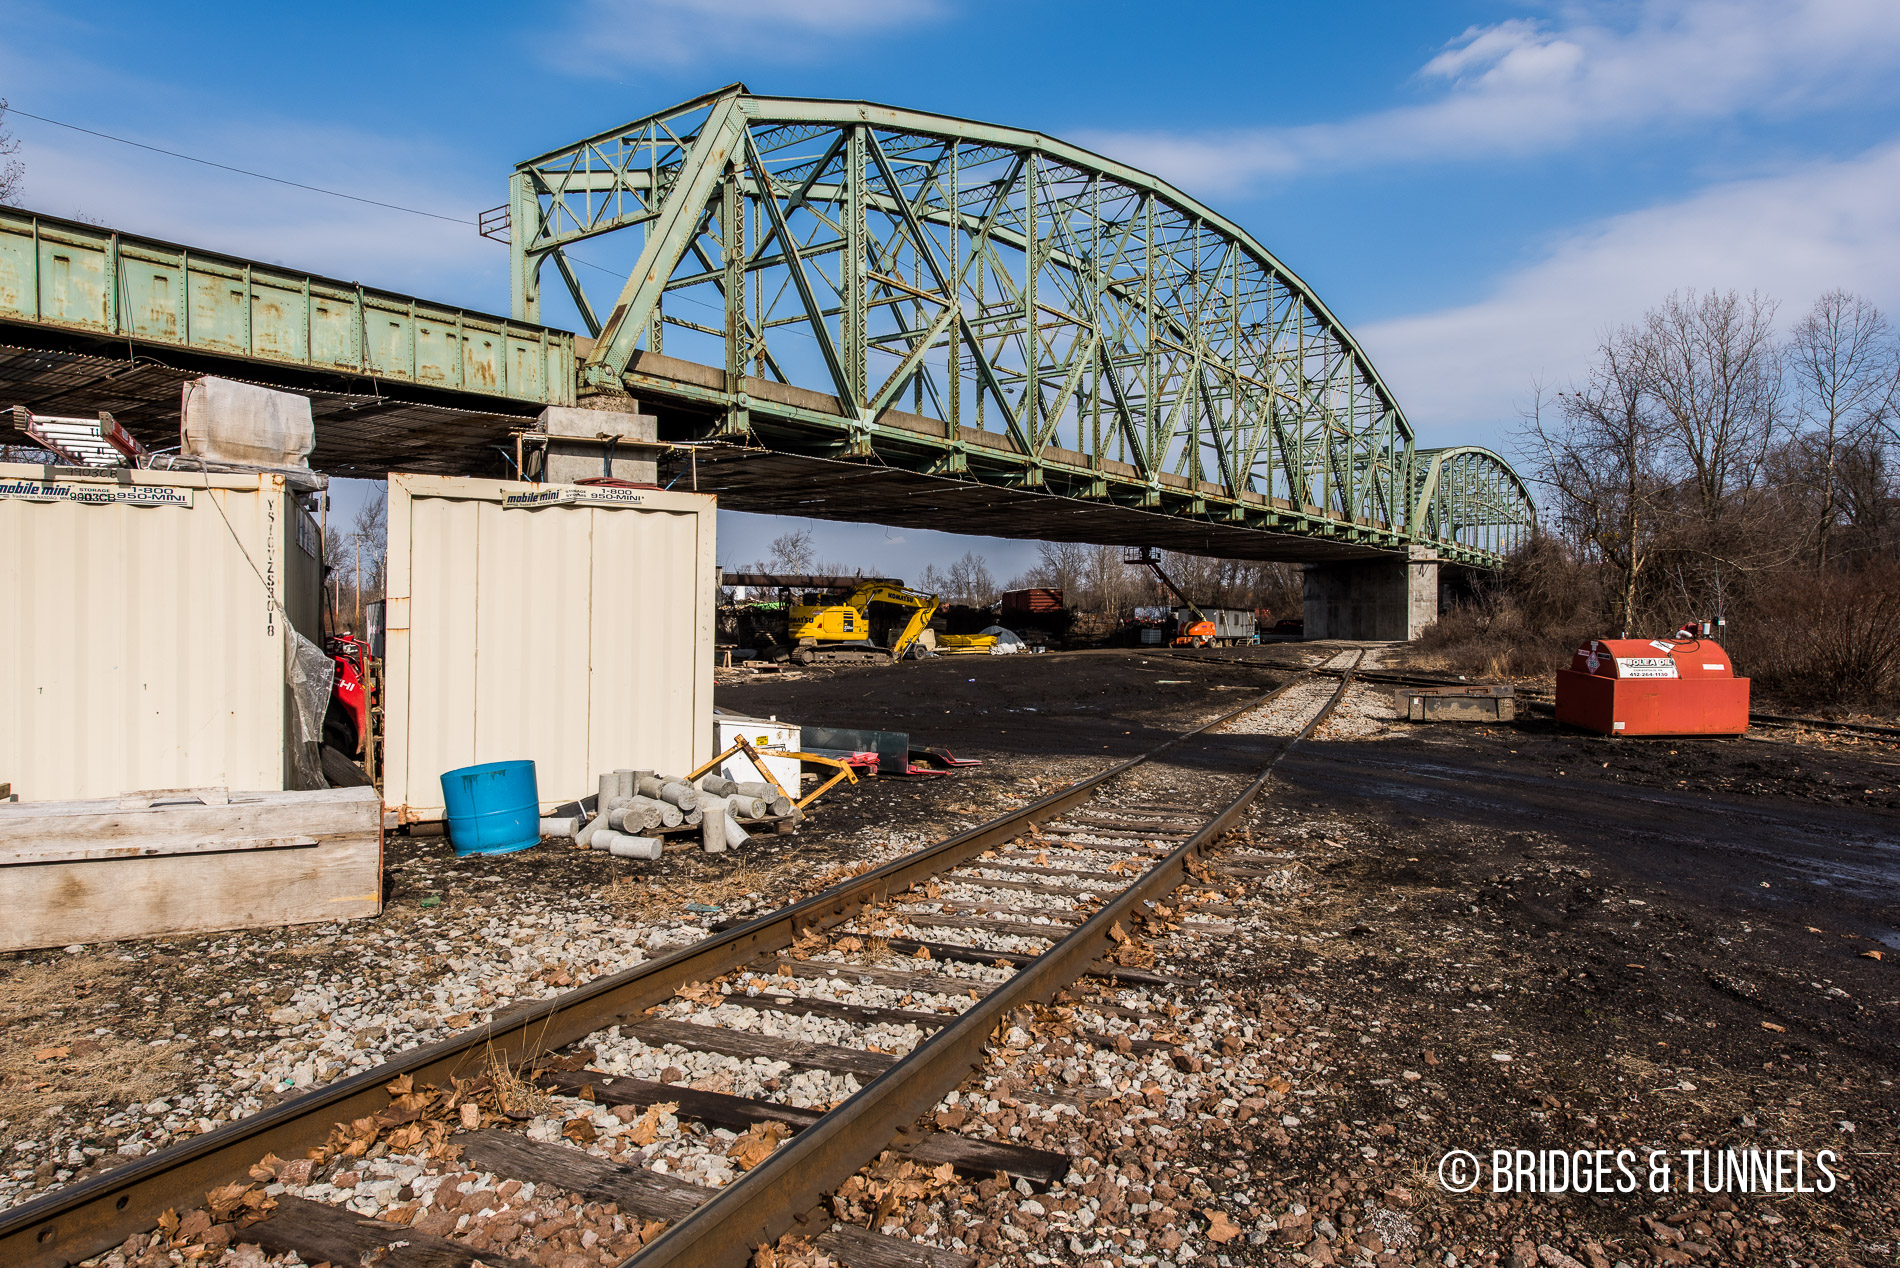 Mahoning Avenue Viaduct